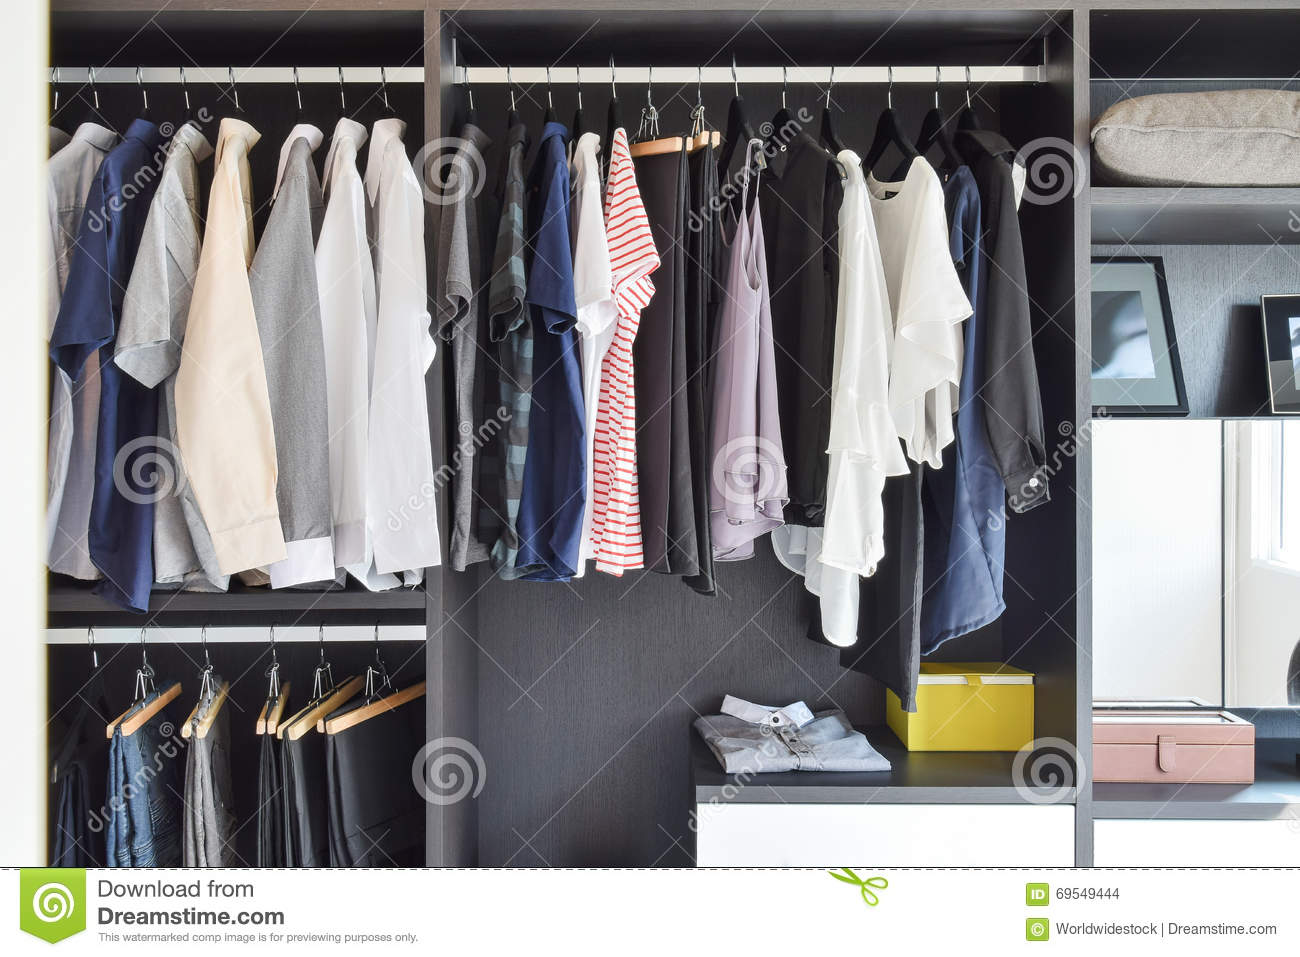 Closet with row of cloths hanging in black wardrobe